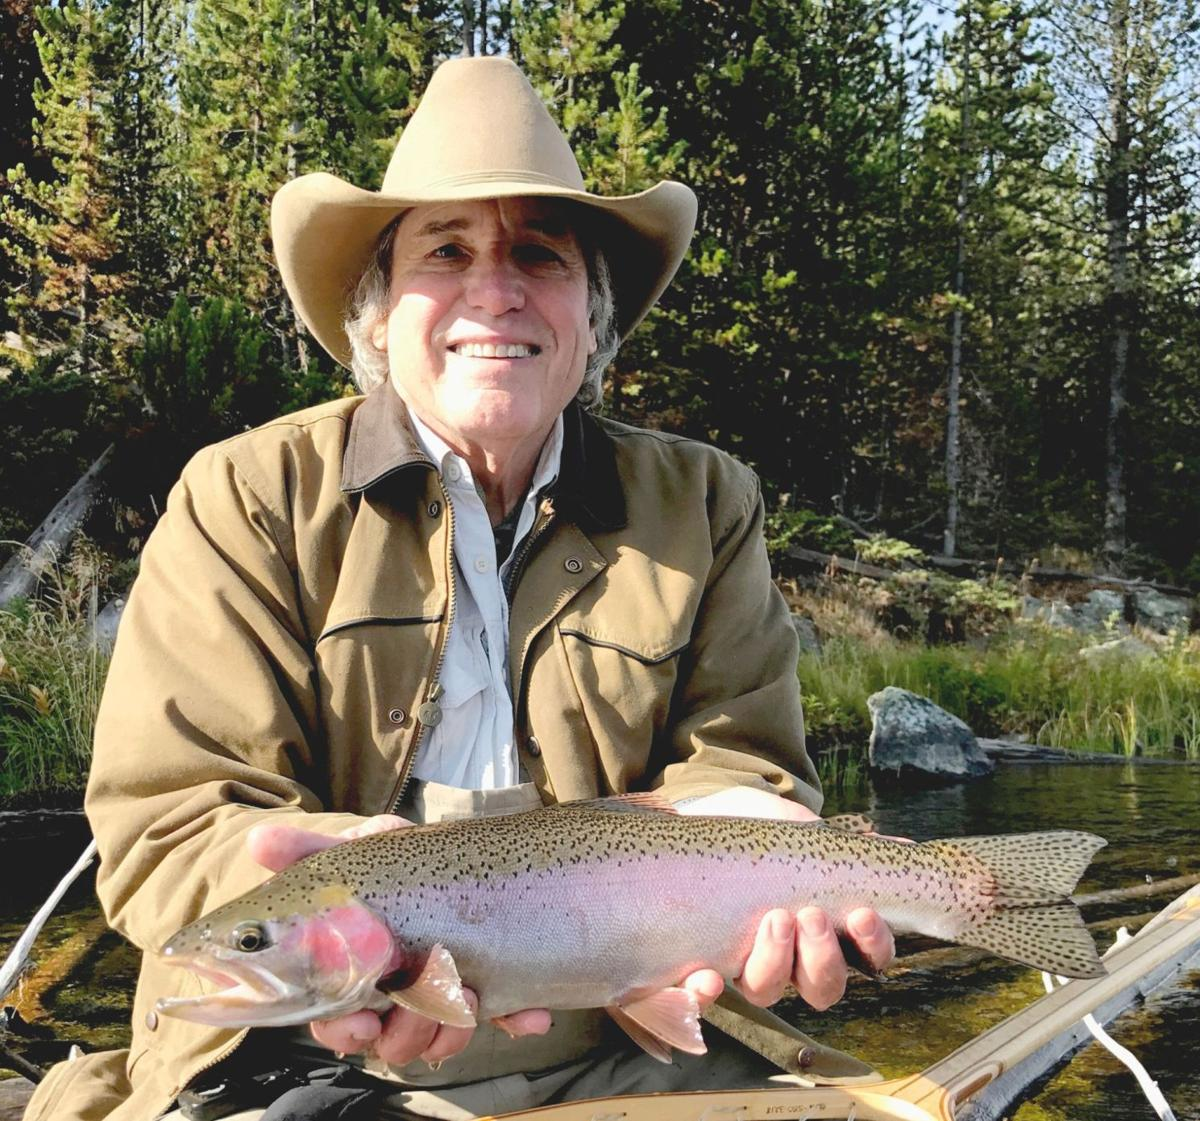 Scott Snowden with a rainbow trout